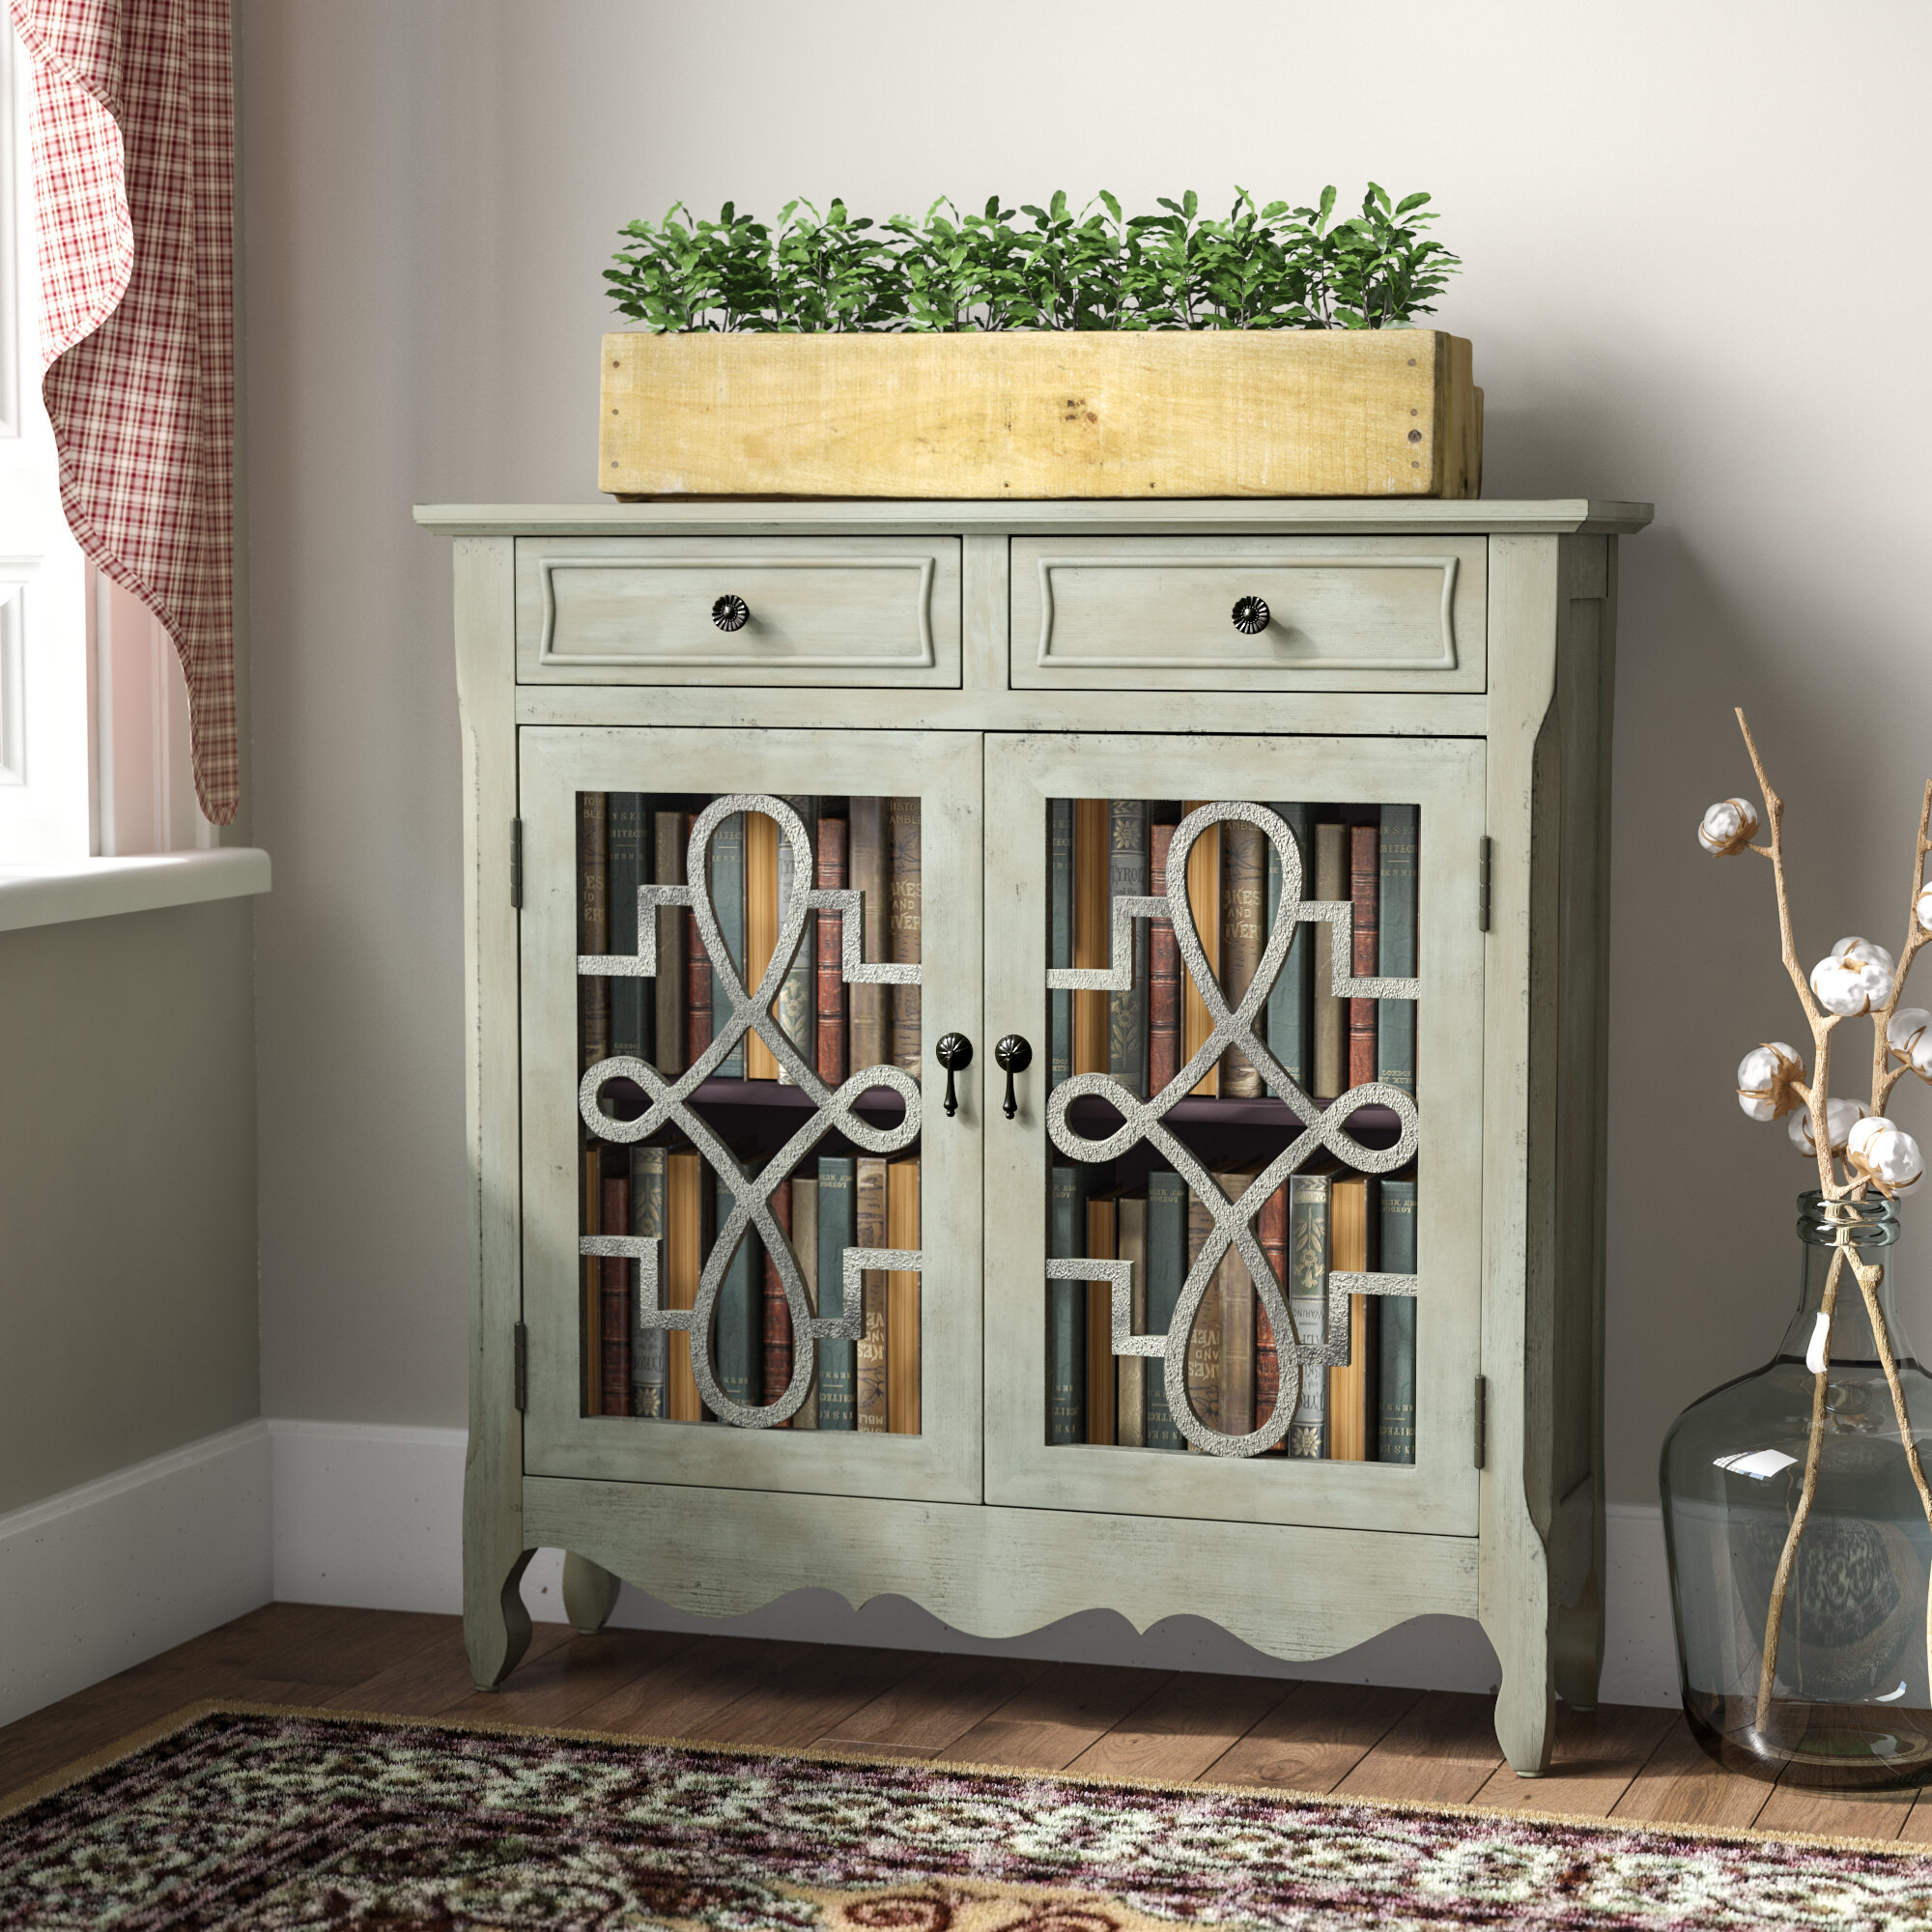 Darby home co alborghus vintage style accent cabinet reviews wayfair ca